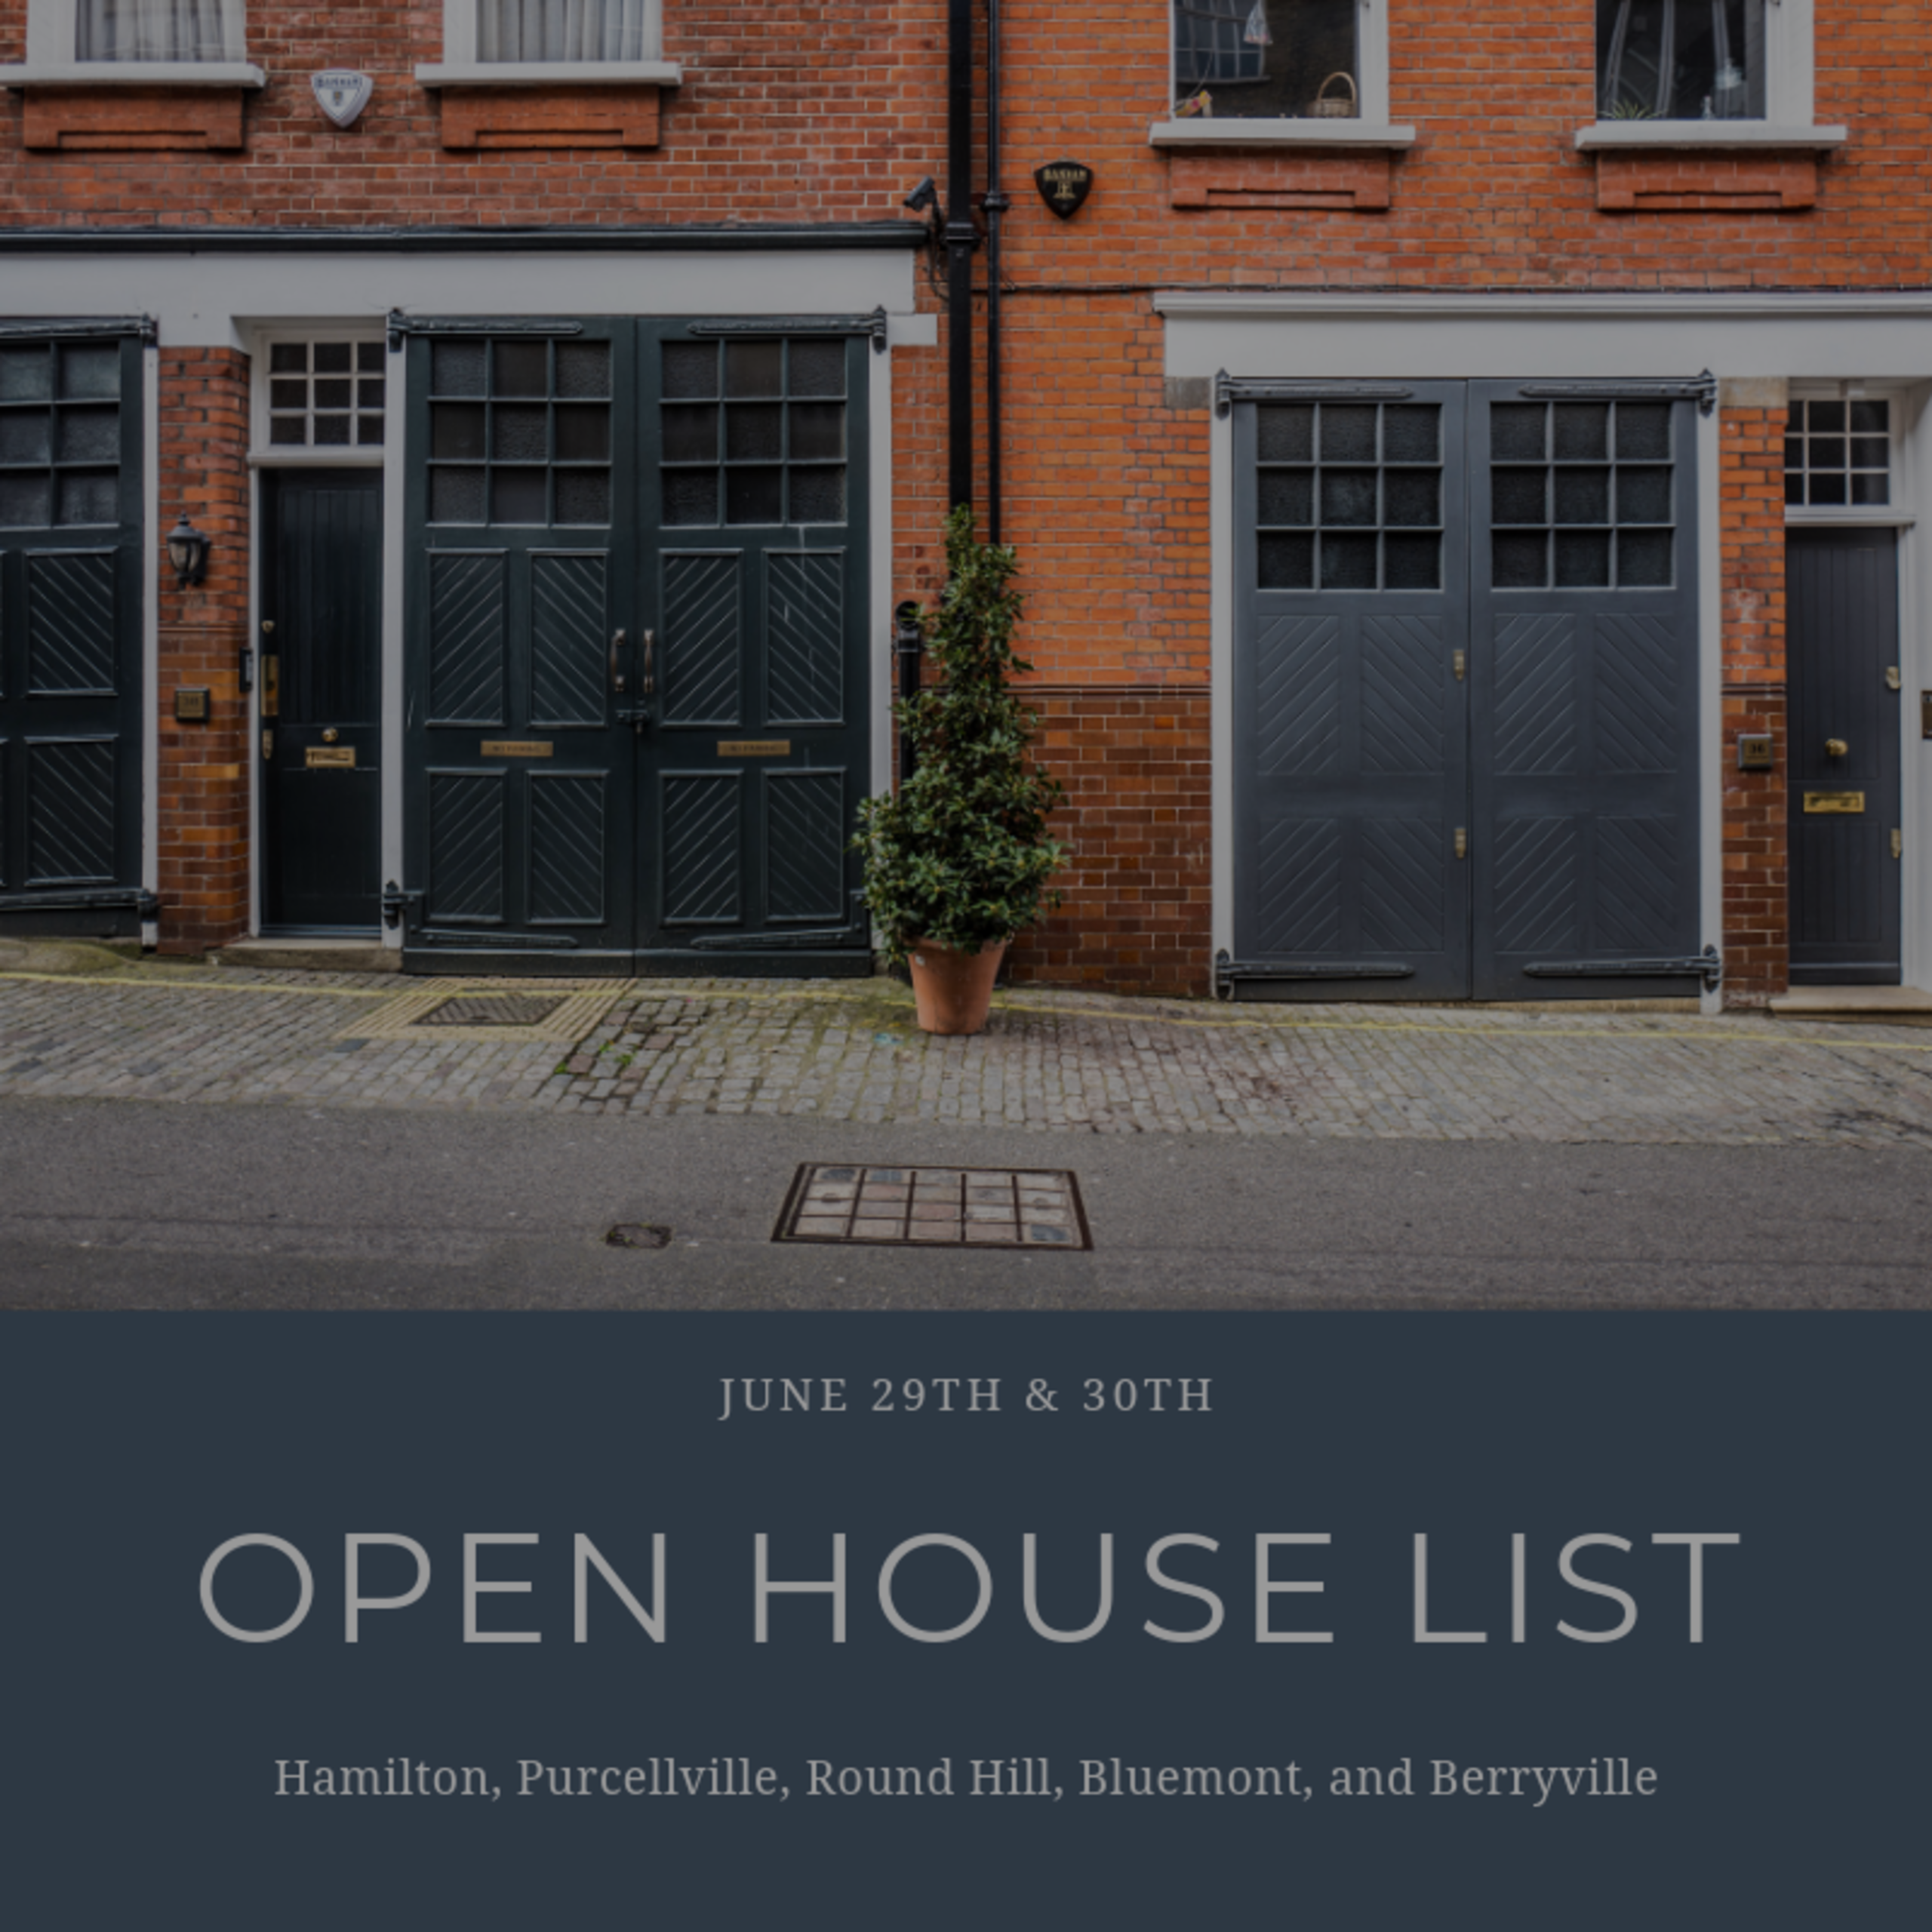 Open House Schedule 6/29/19 – 6/30/19